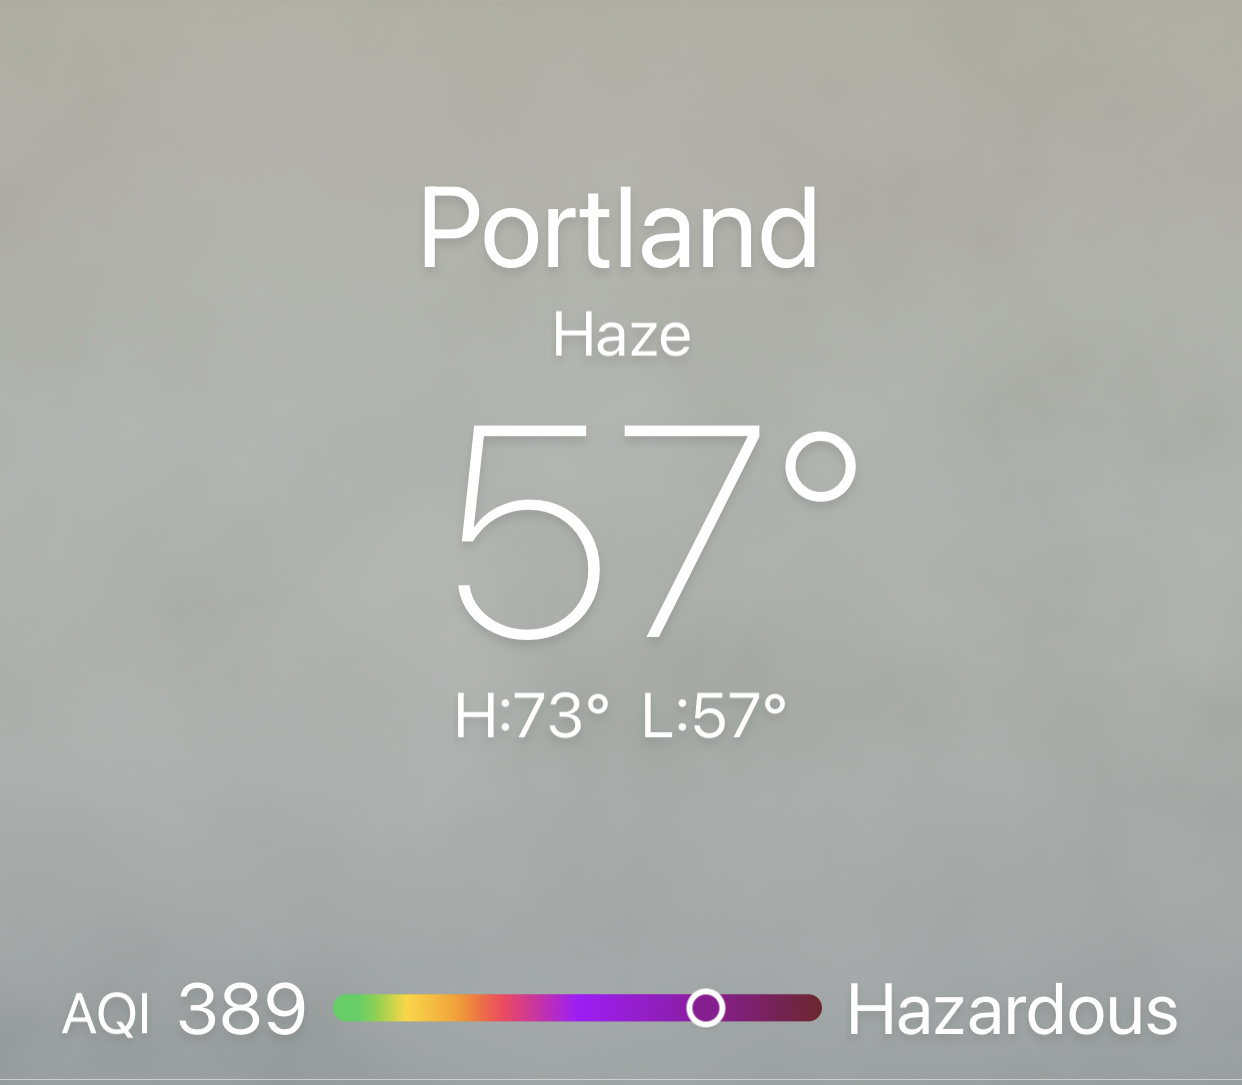 Screenshot of weather app showing Hazardous AQI